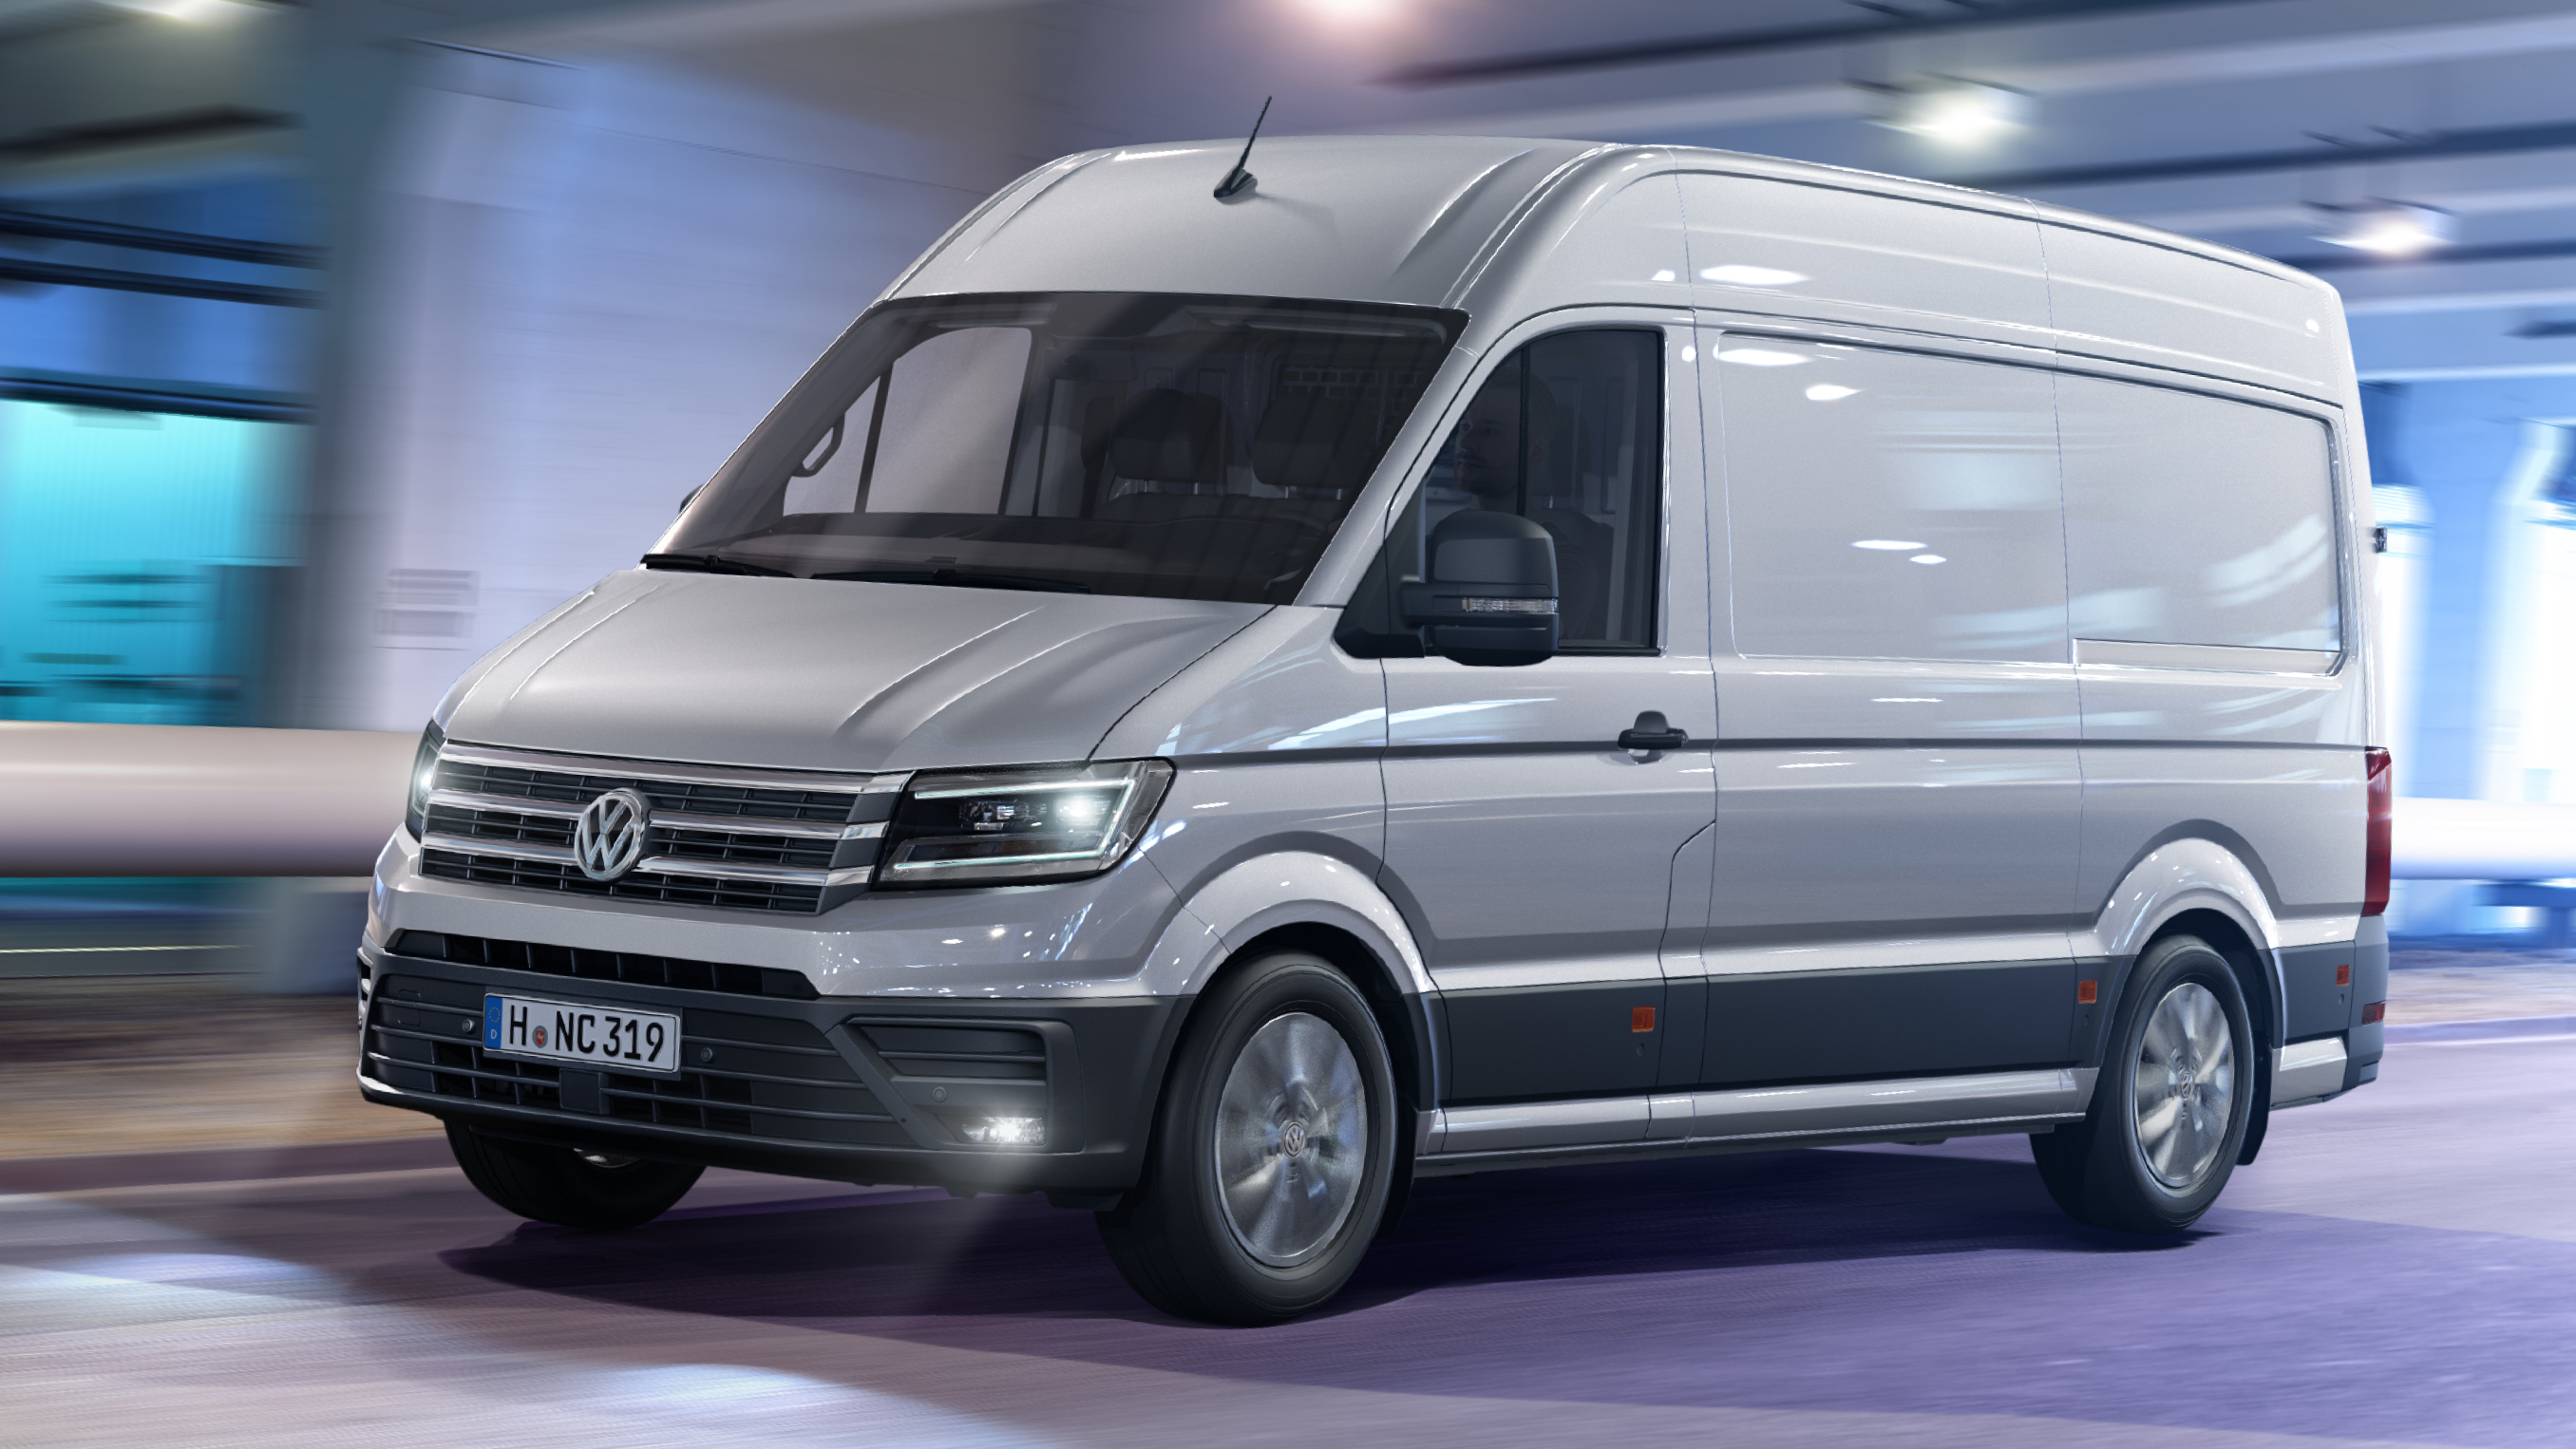 2017 volkswagen crafter review gallery top speed. Black Bedroom Furniture Sets. Home Design Ideas